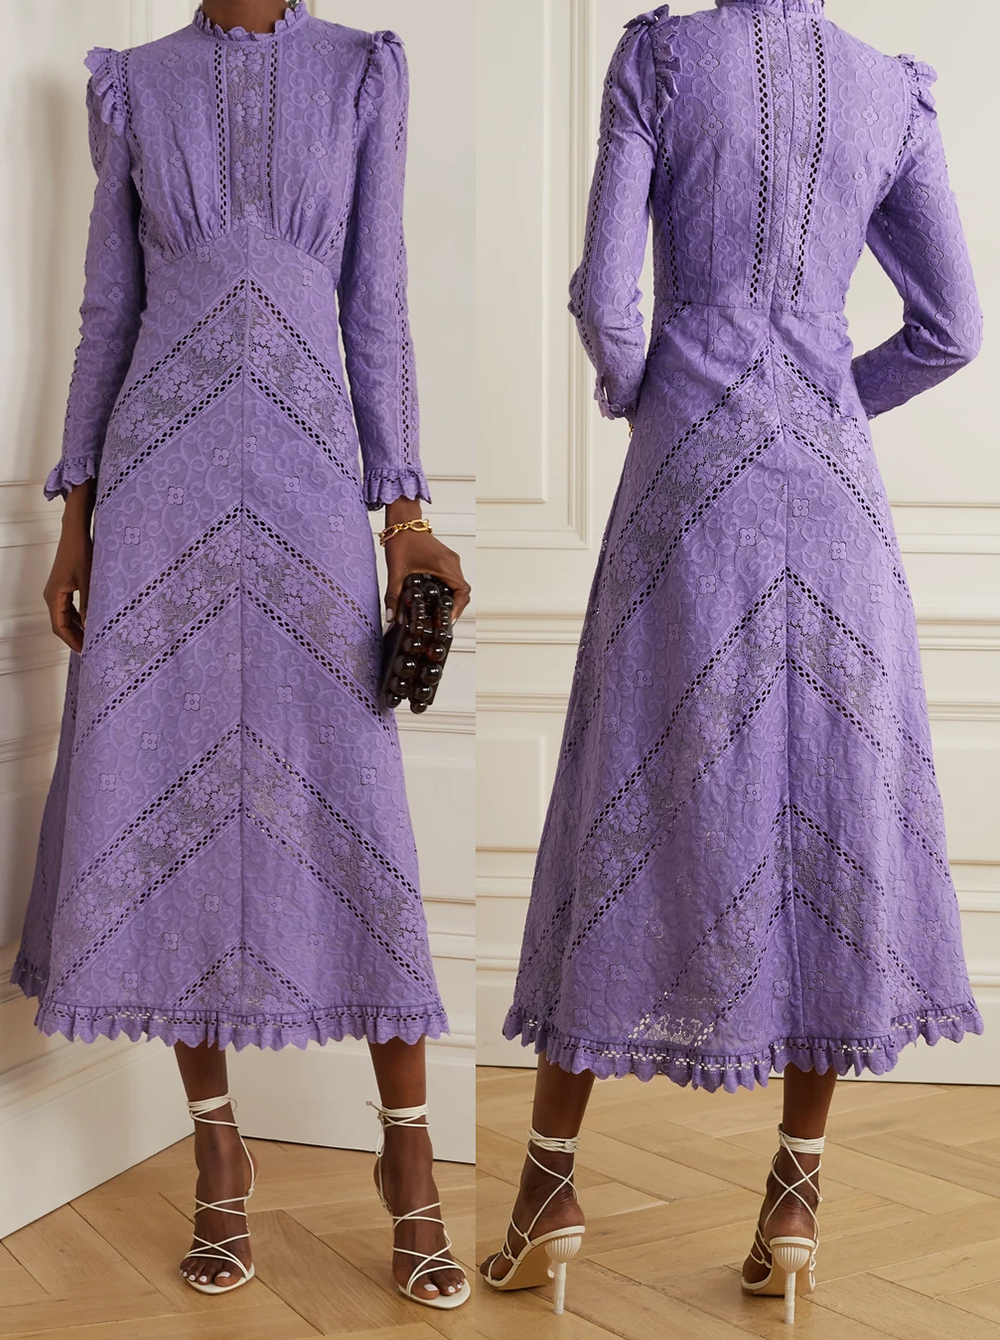 Zimmermann Dresses 2021. Lilac Dress for Royal Ascot 2021. Lace Zimmermann Dress 2021. Lilac Lace Midi Dress 2021. Lilac Dress for Wedding Guest 2021. Lilac Mother of the Bride Dress 2021. Mother of the Groom outfits 2021.